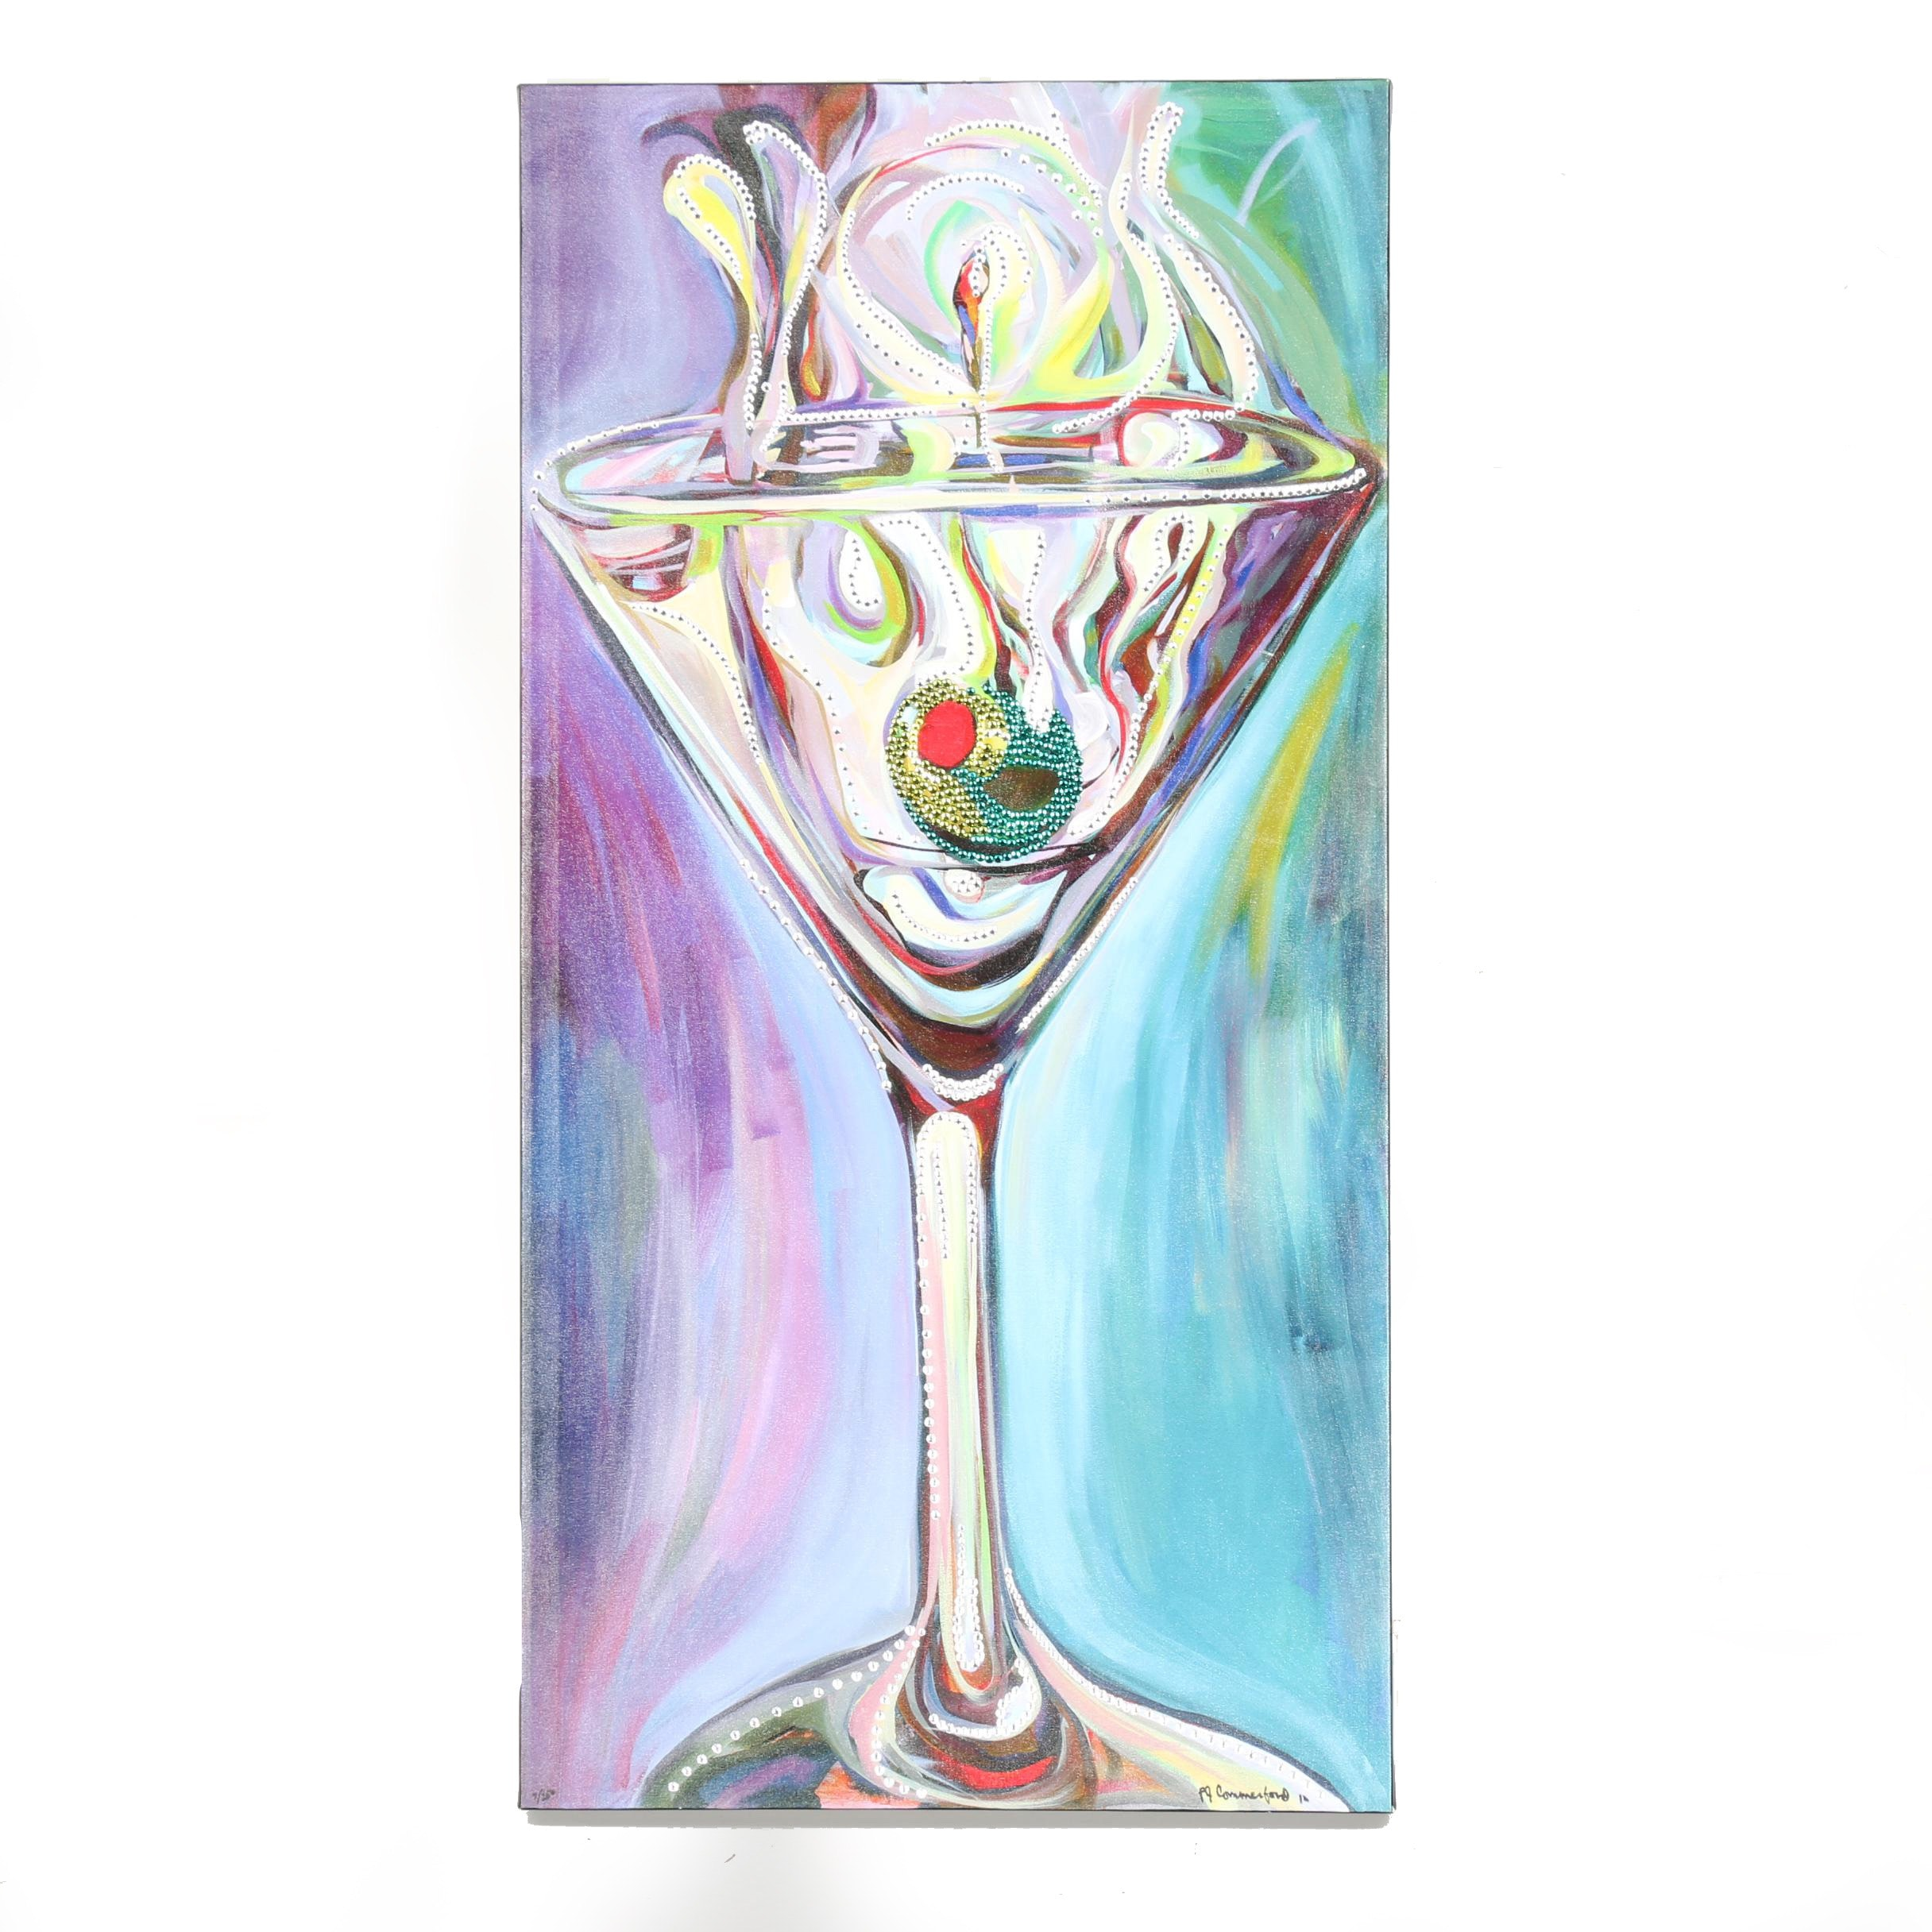 Limited Edition Giclée With Sequins of Martini Glass